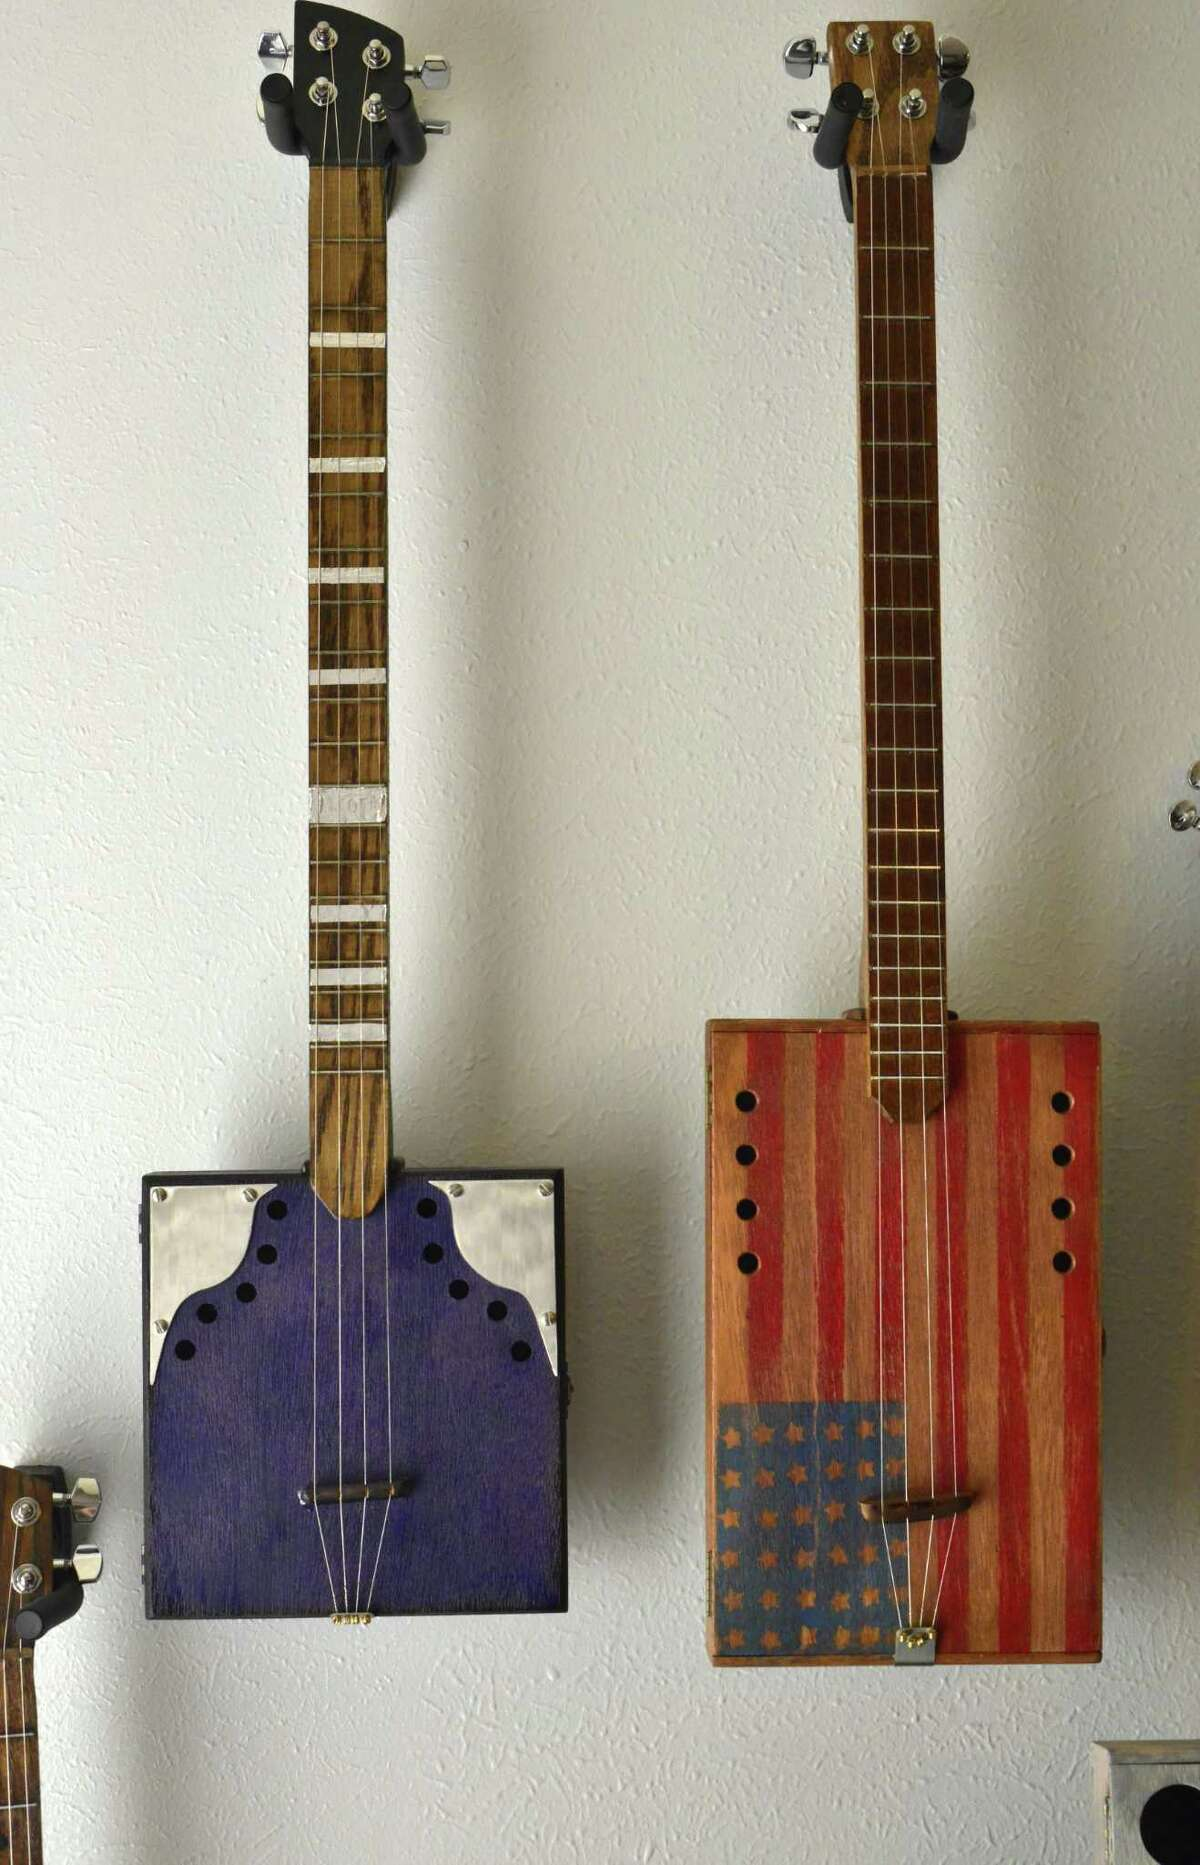 In this age of repurposing, Dave Mullican of Fannett has found a unique way to reuse cigar boxes: he makes them into guitars and ukuleles.